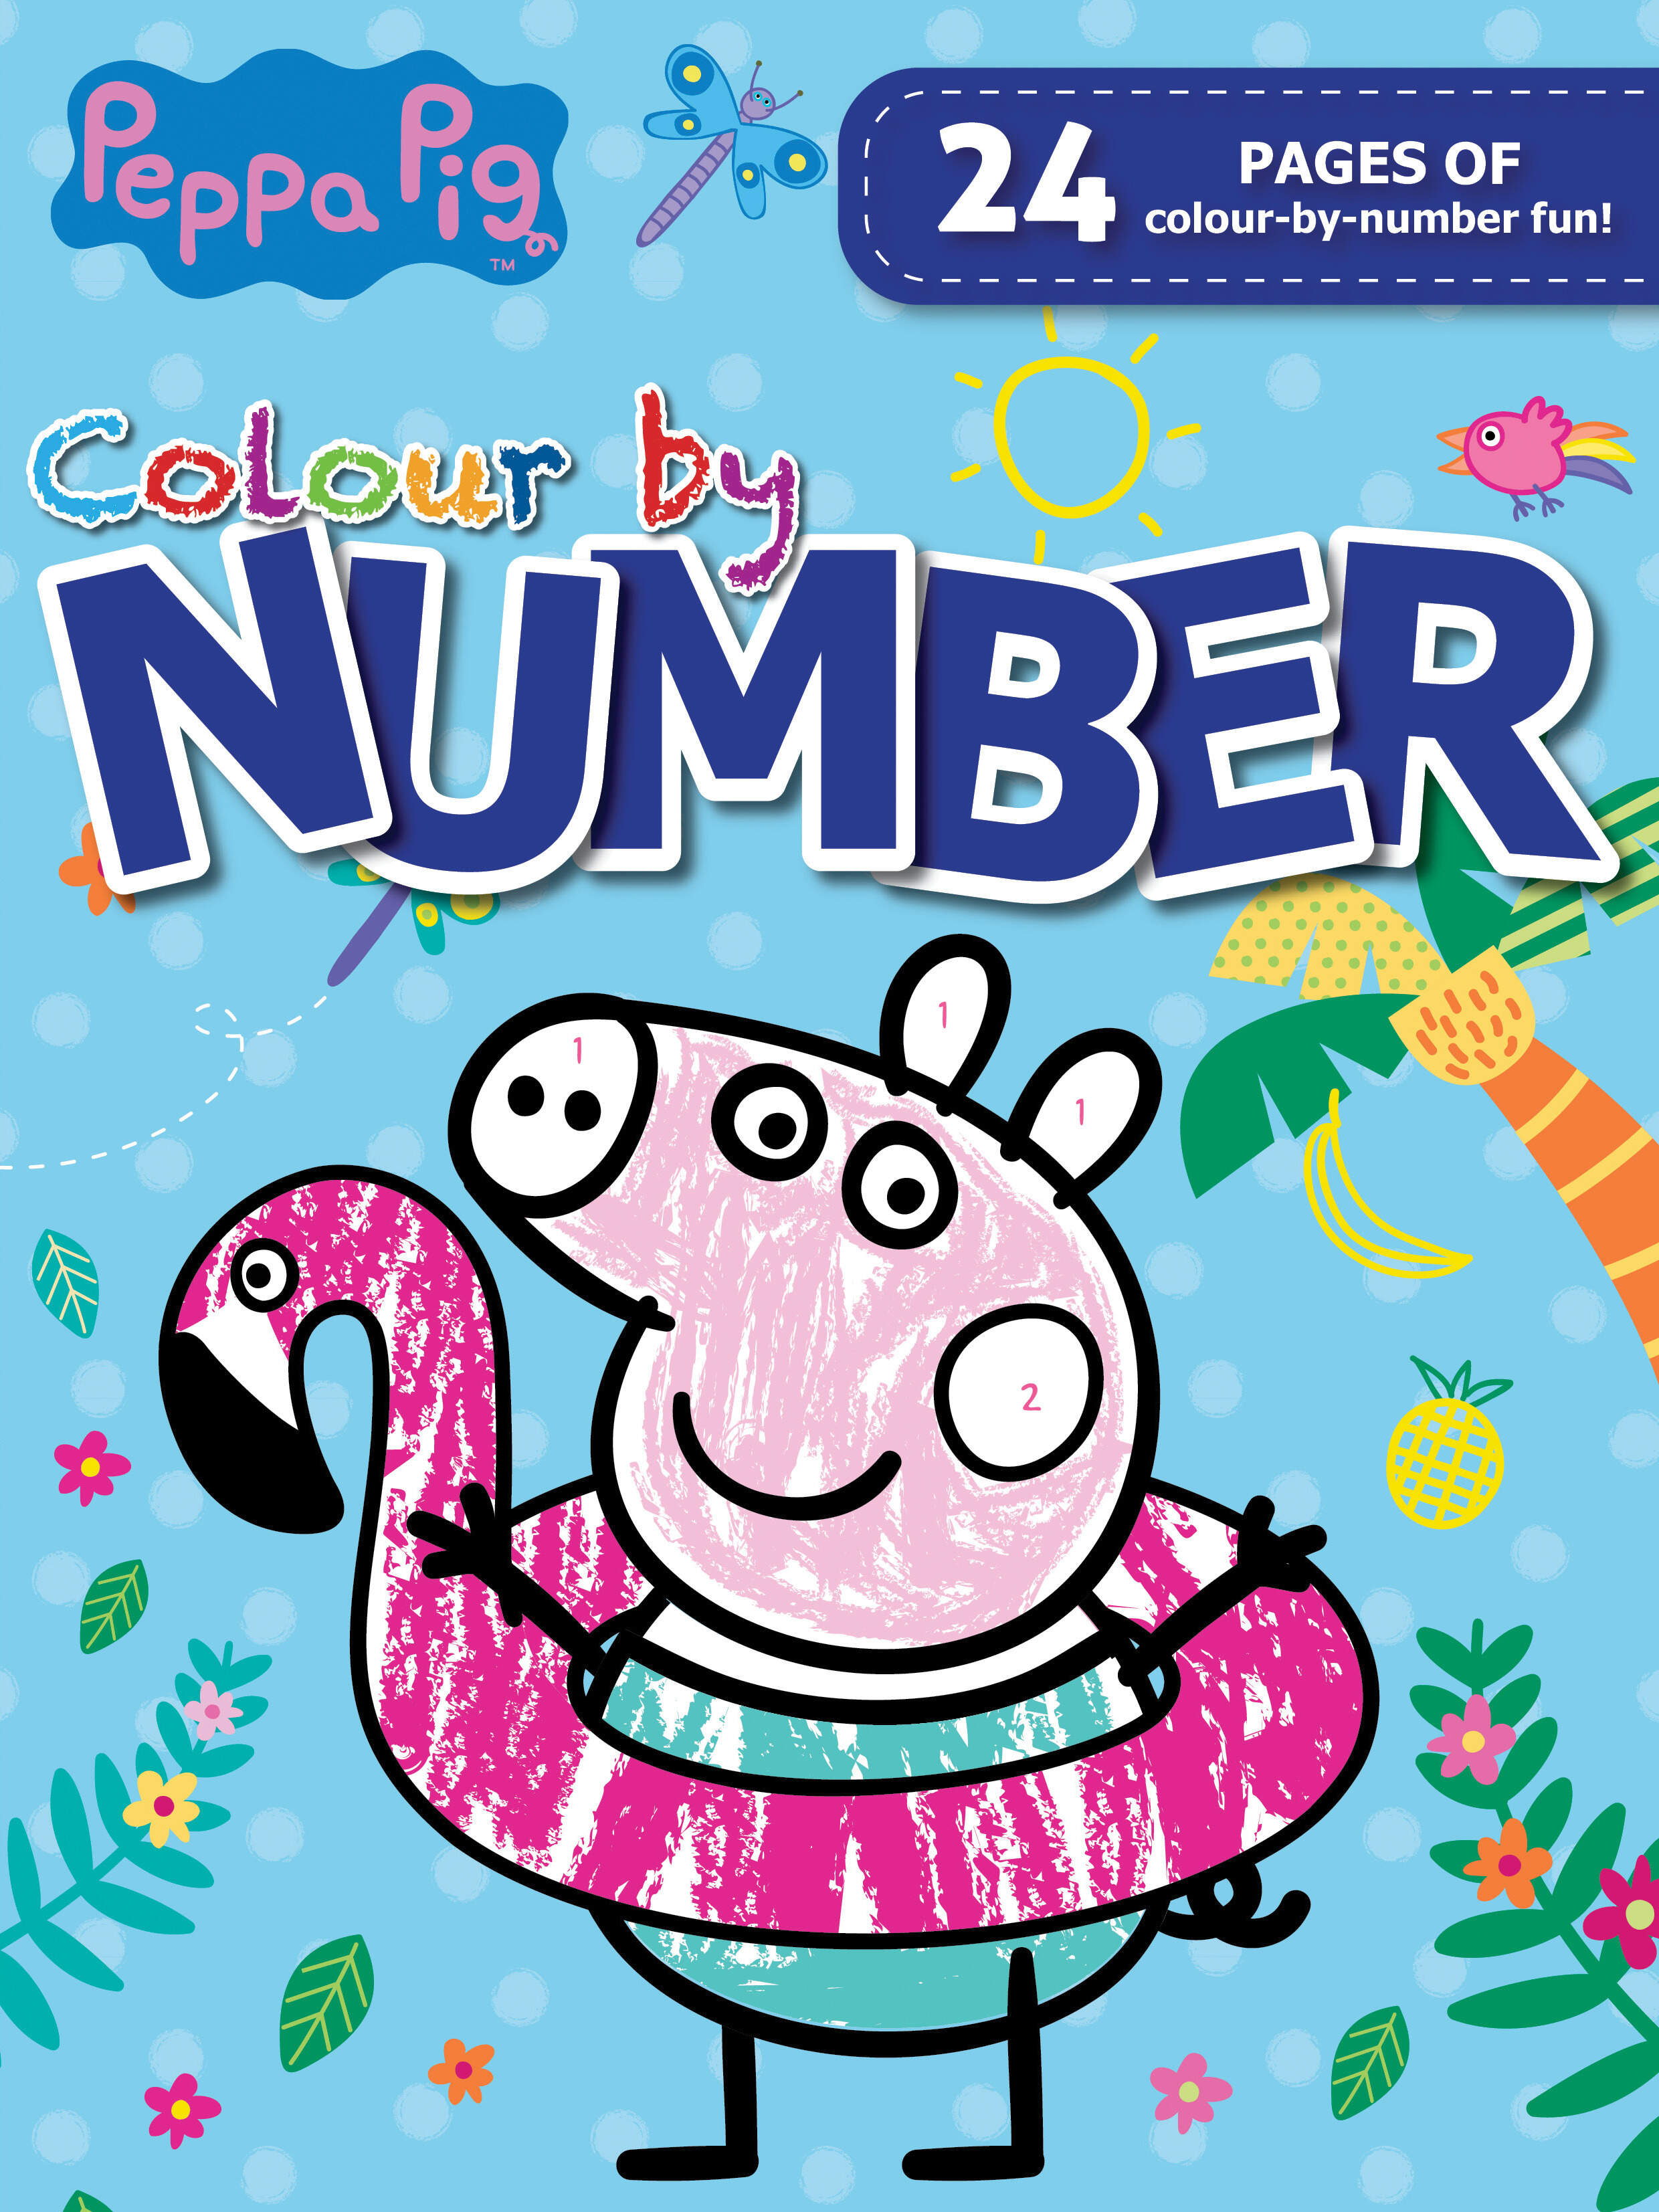 Peppa Pig - Colour By Number